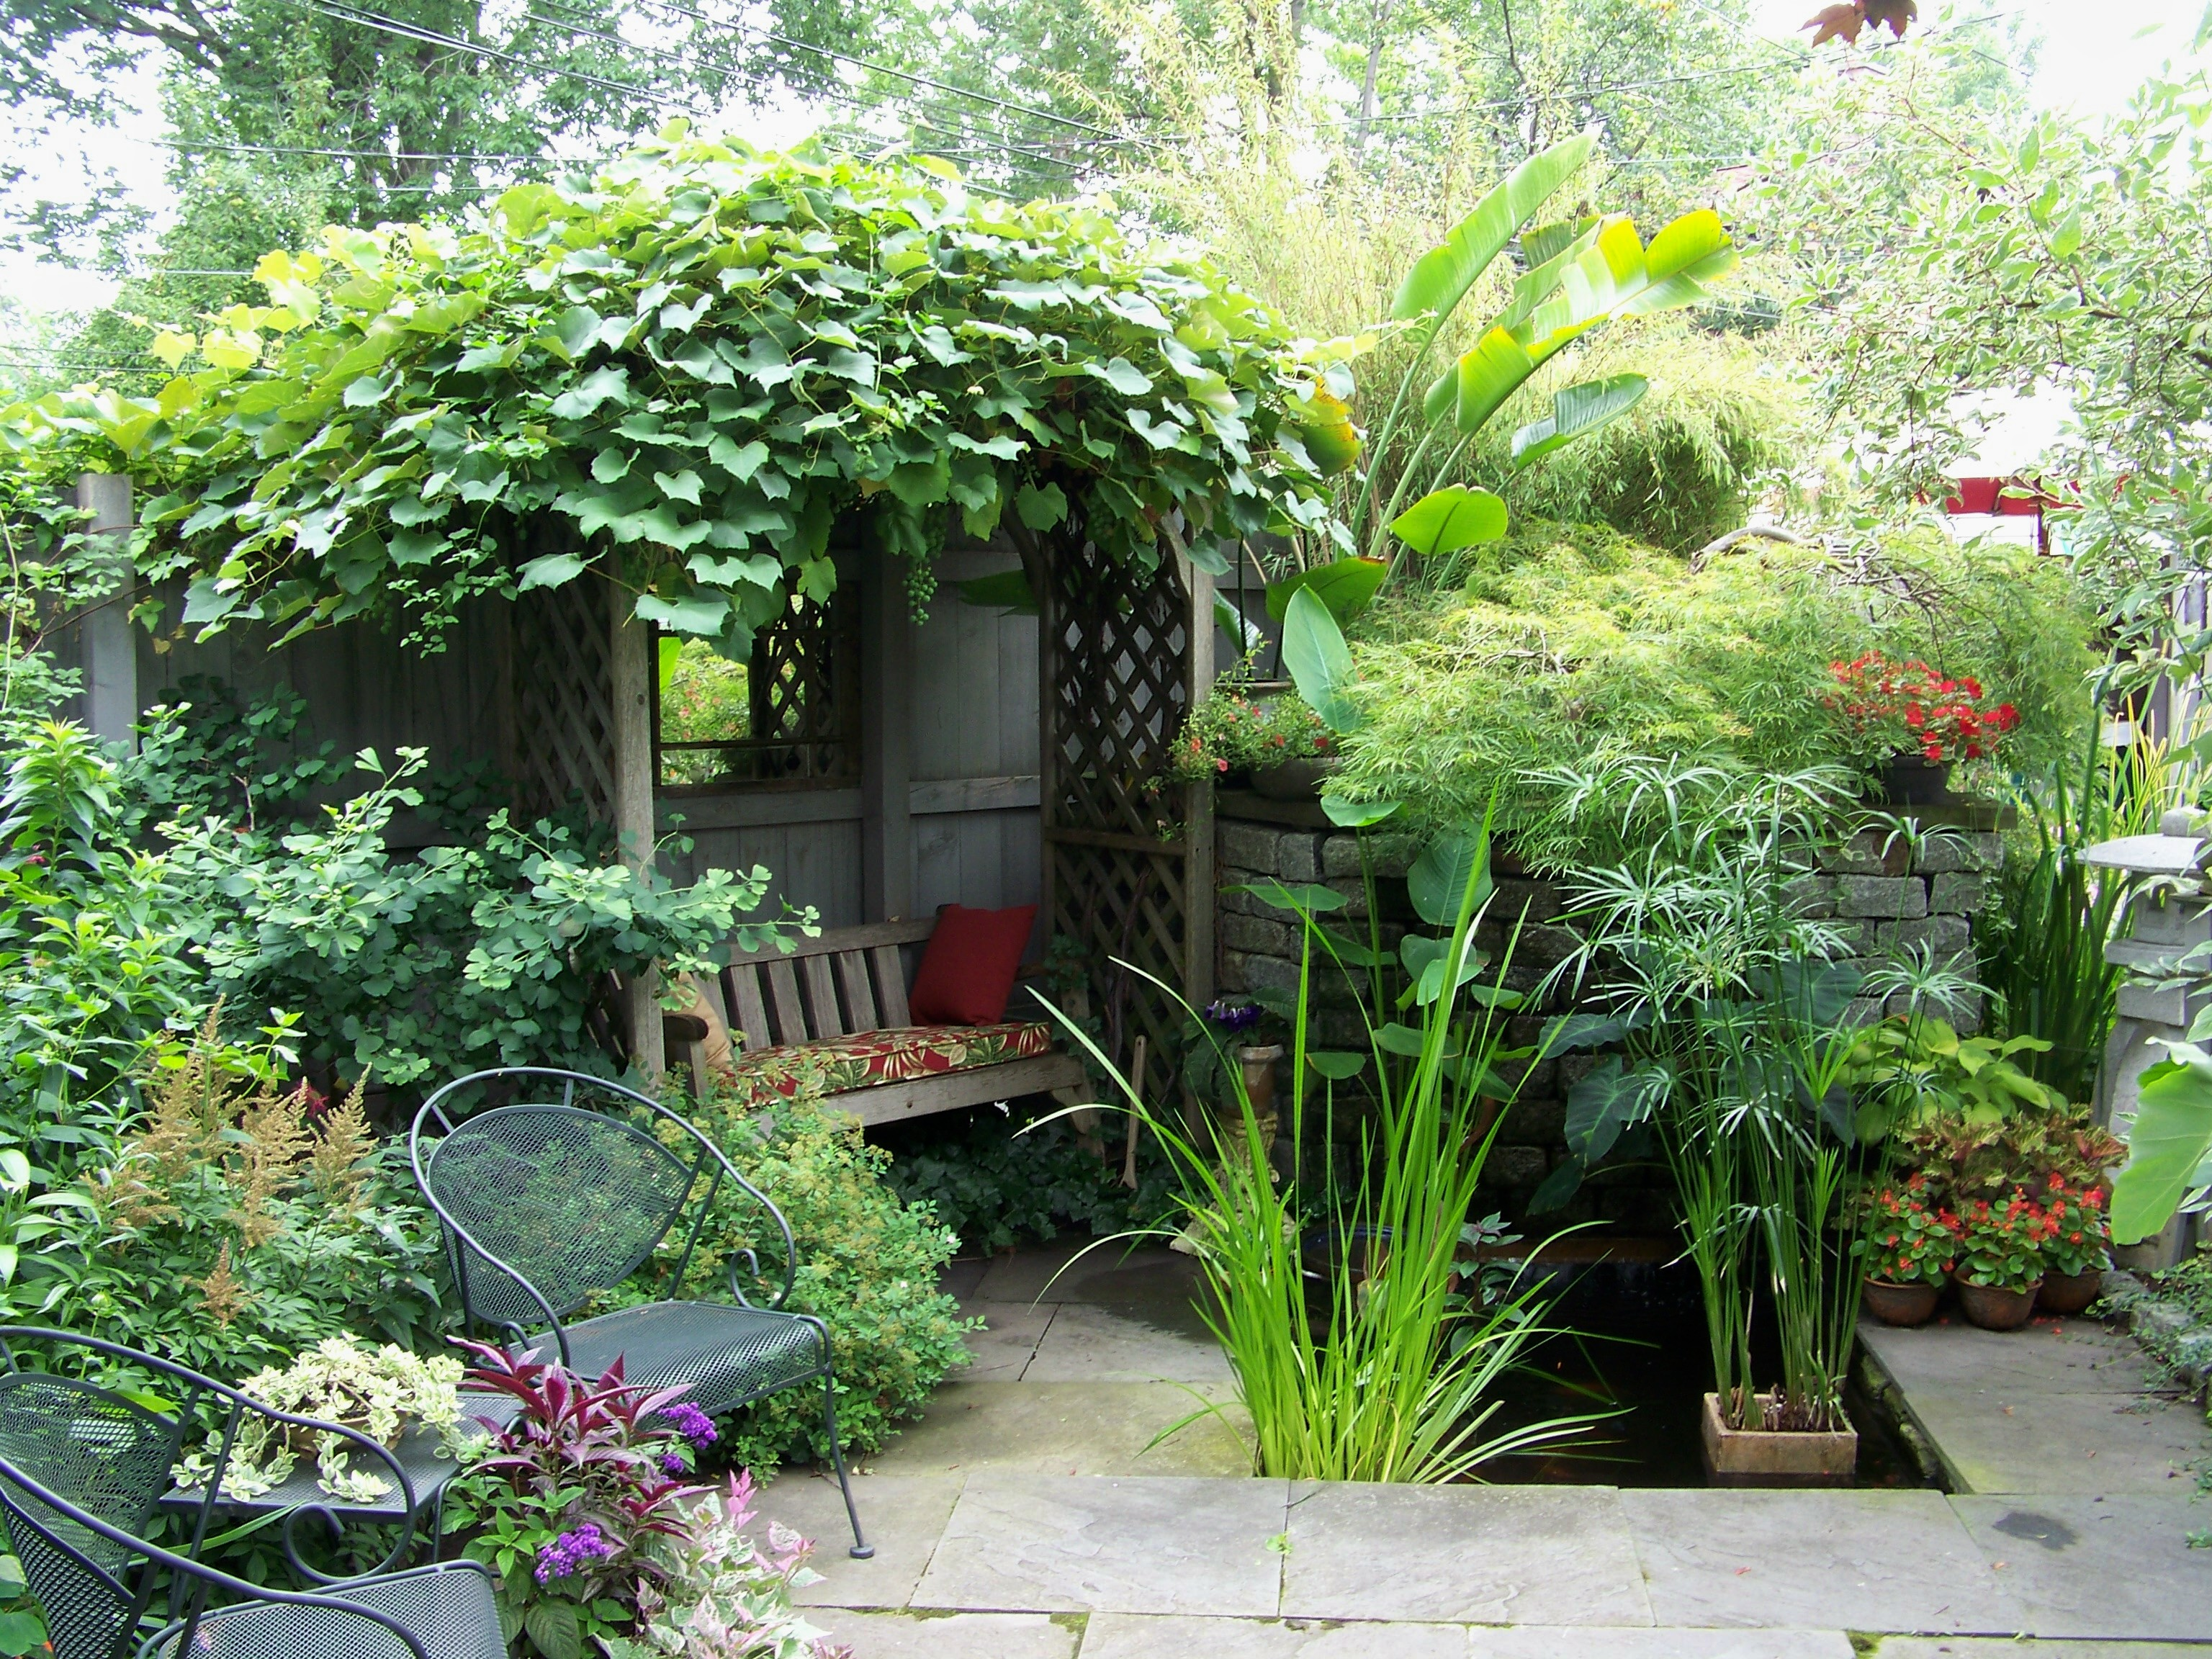 5 Amazing Small Yard Garden Ideas - NLC Loans on Patio And Grass Garden Ideas id=63759